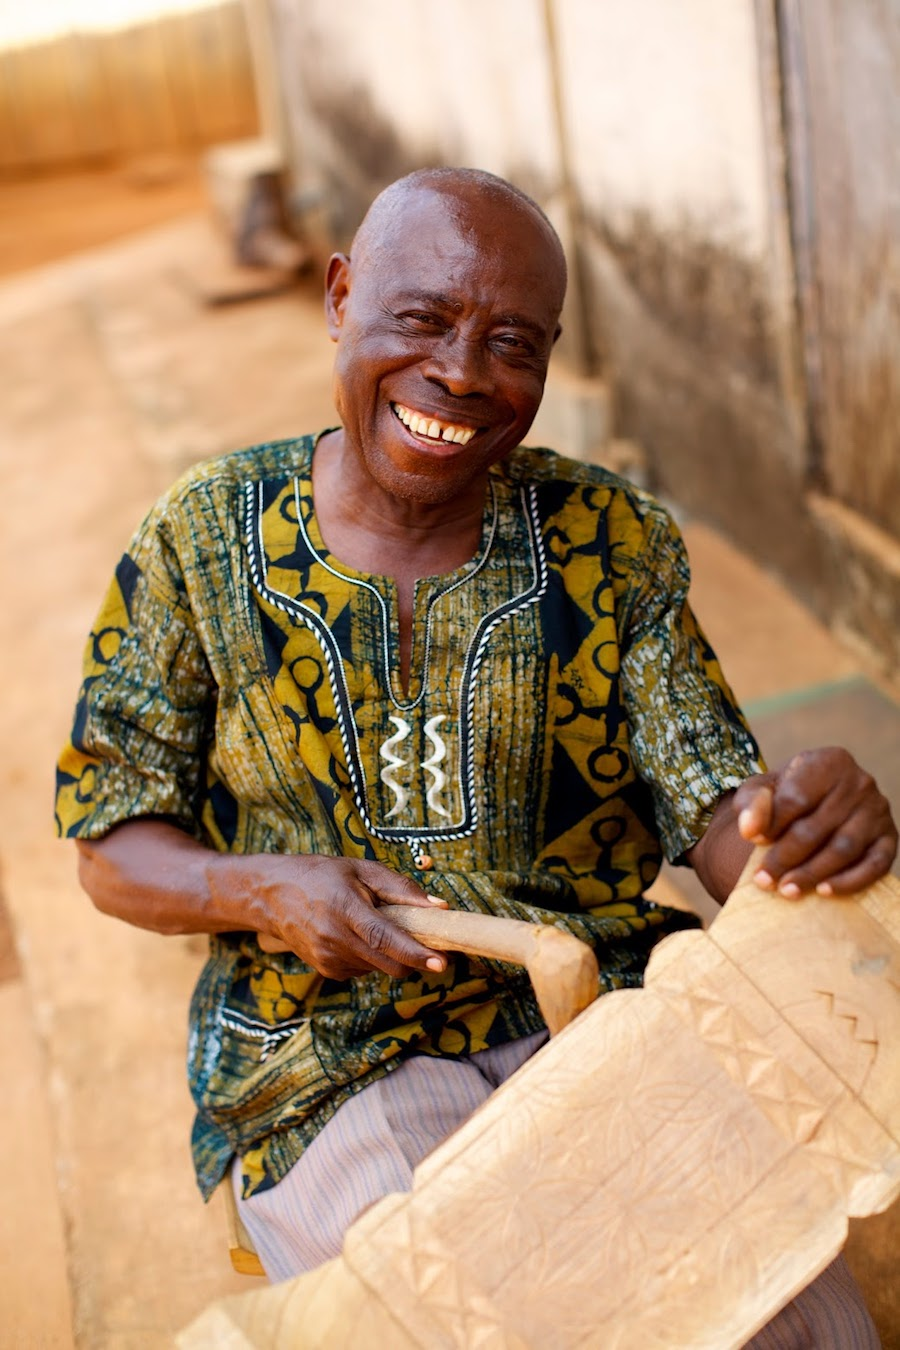 Chief Carver Nana Frimpong at work The experience of the Chief of carvers